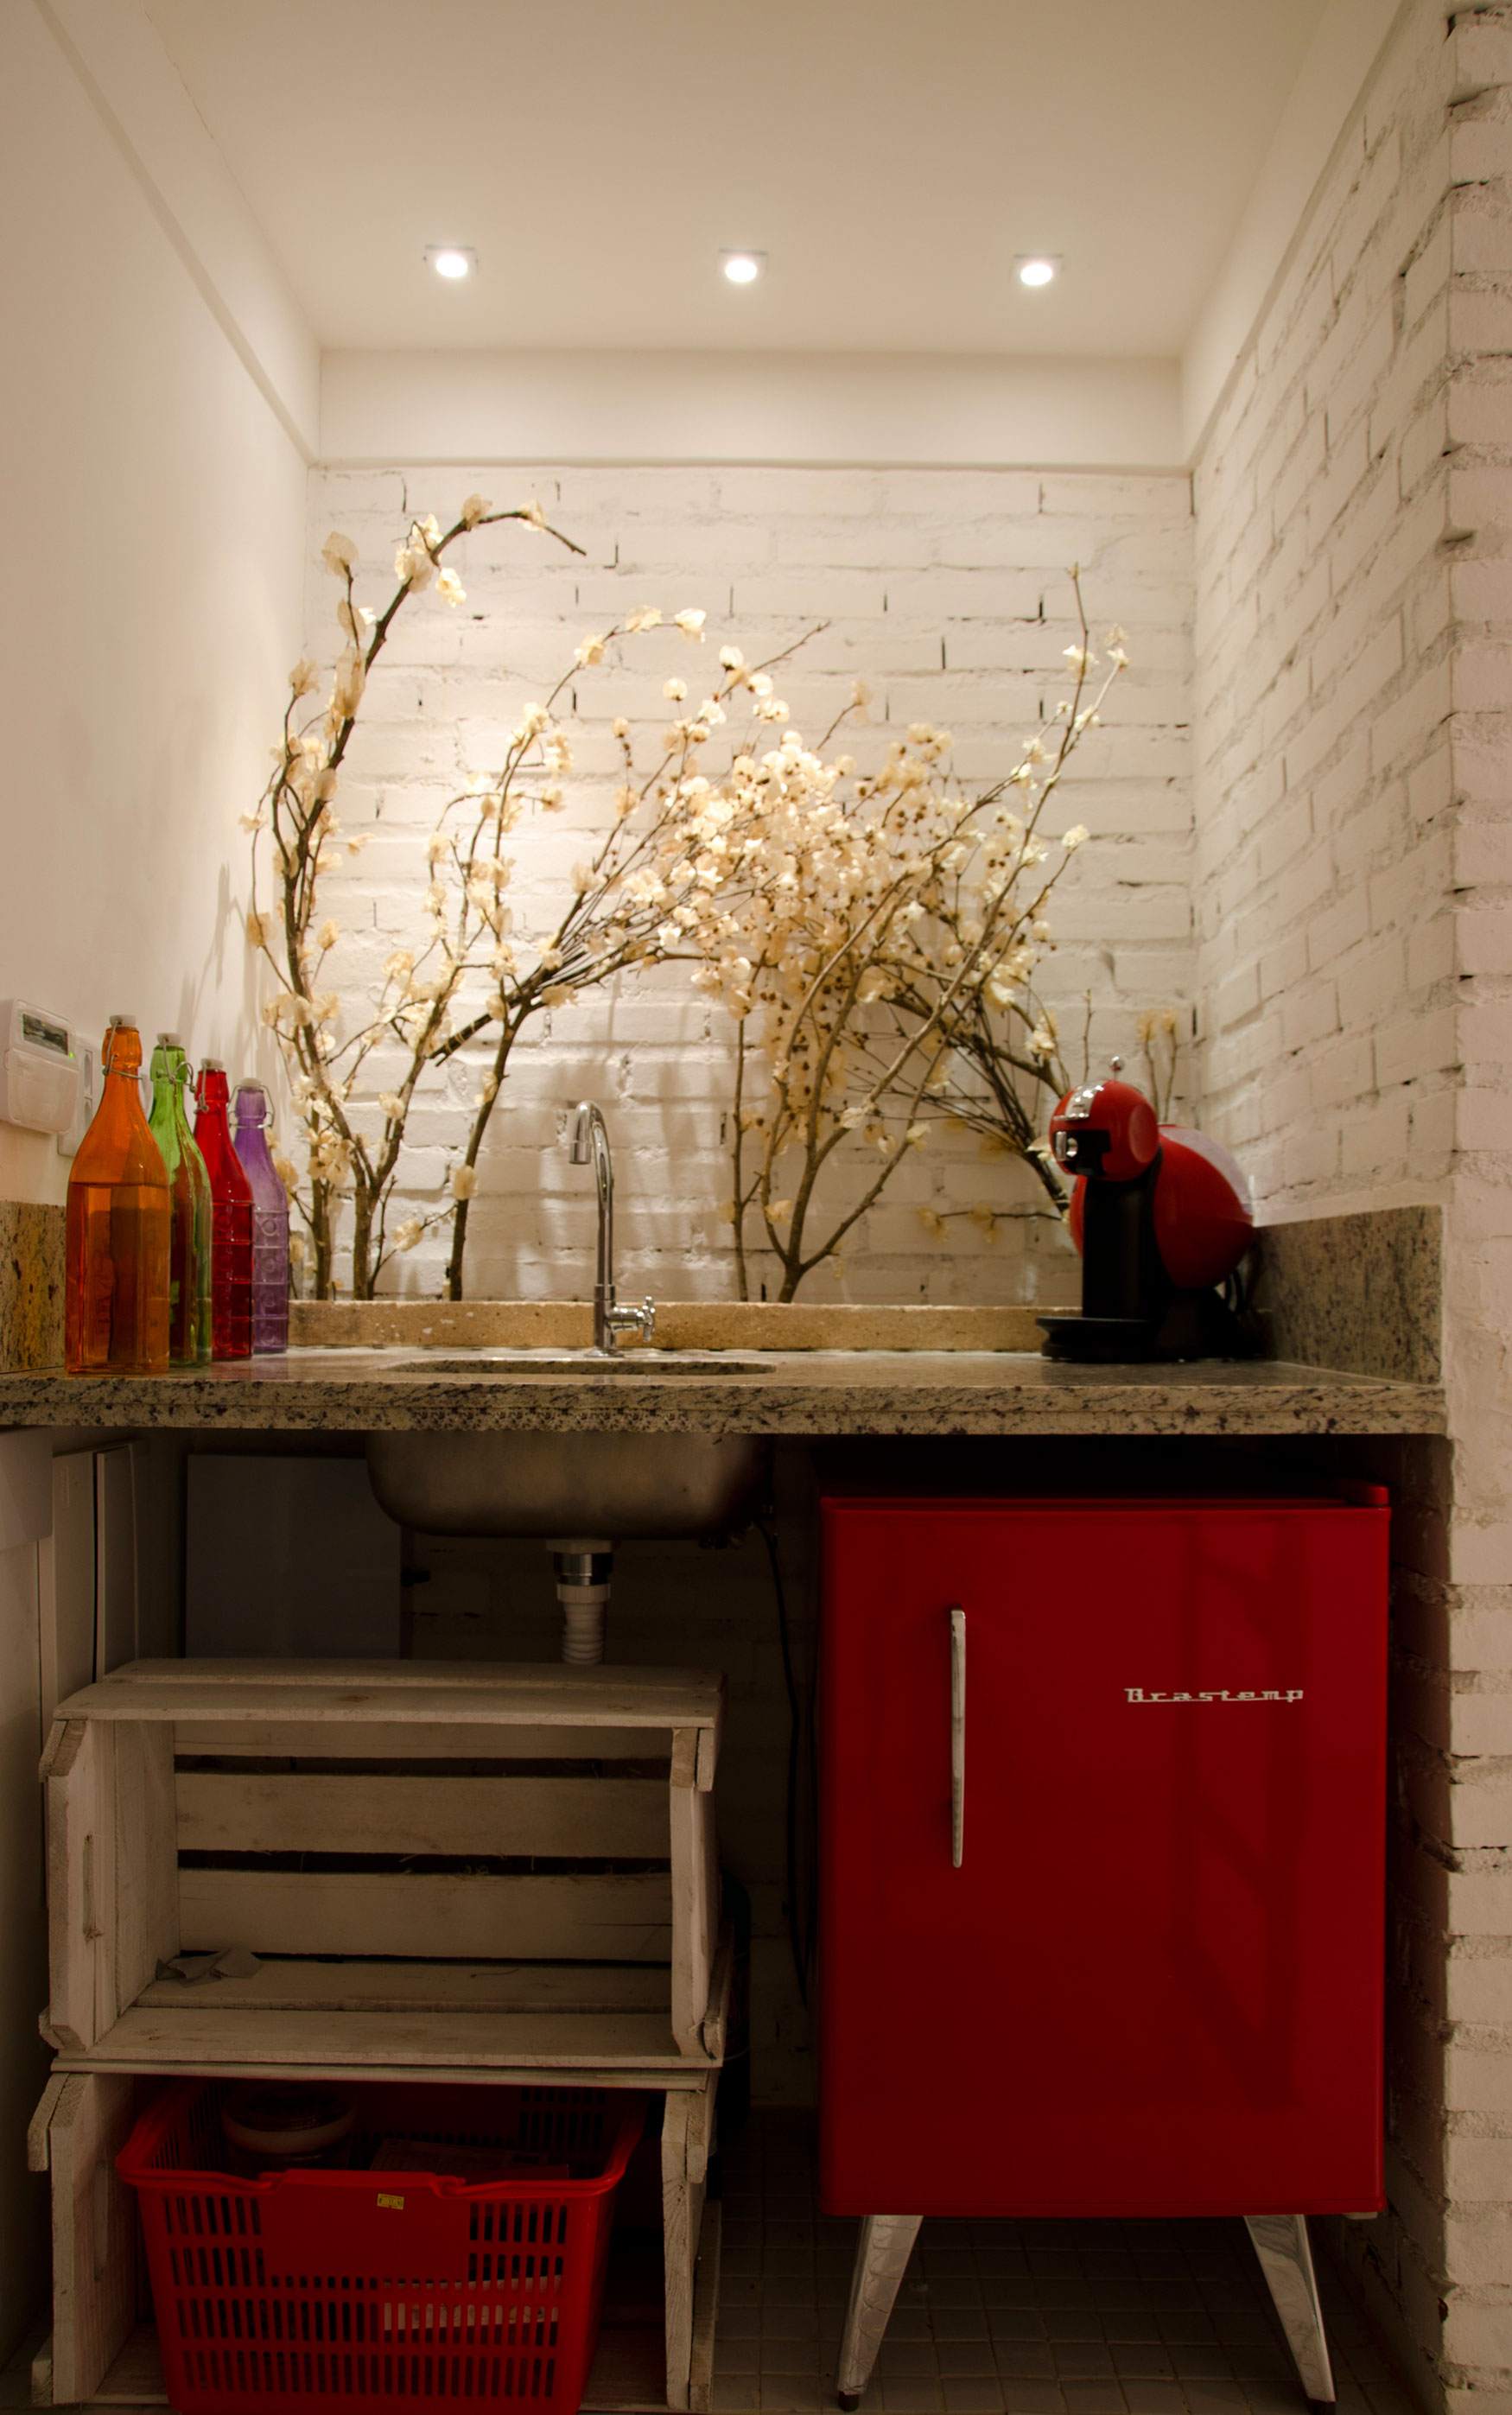 Home Studio Interior Design: Unique Interior Creation : Adoring Sink With Repurposed Crates And Catchy Sideboard Tucked In